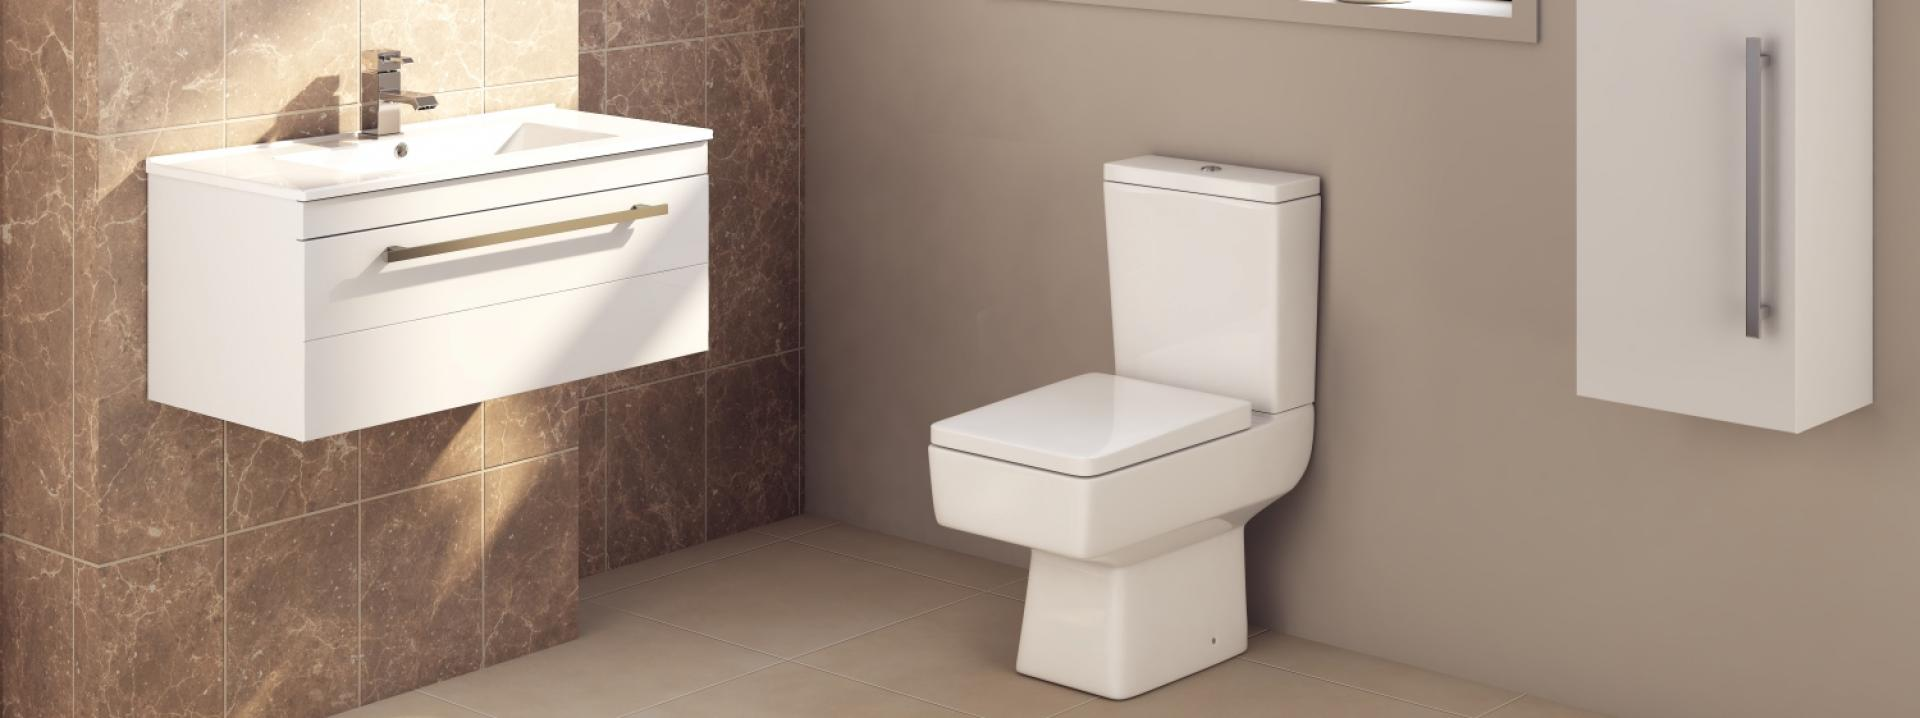 Turin Bathroom Furniture